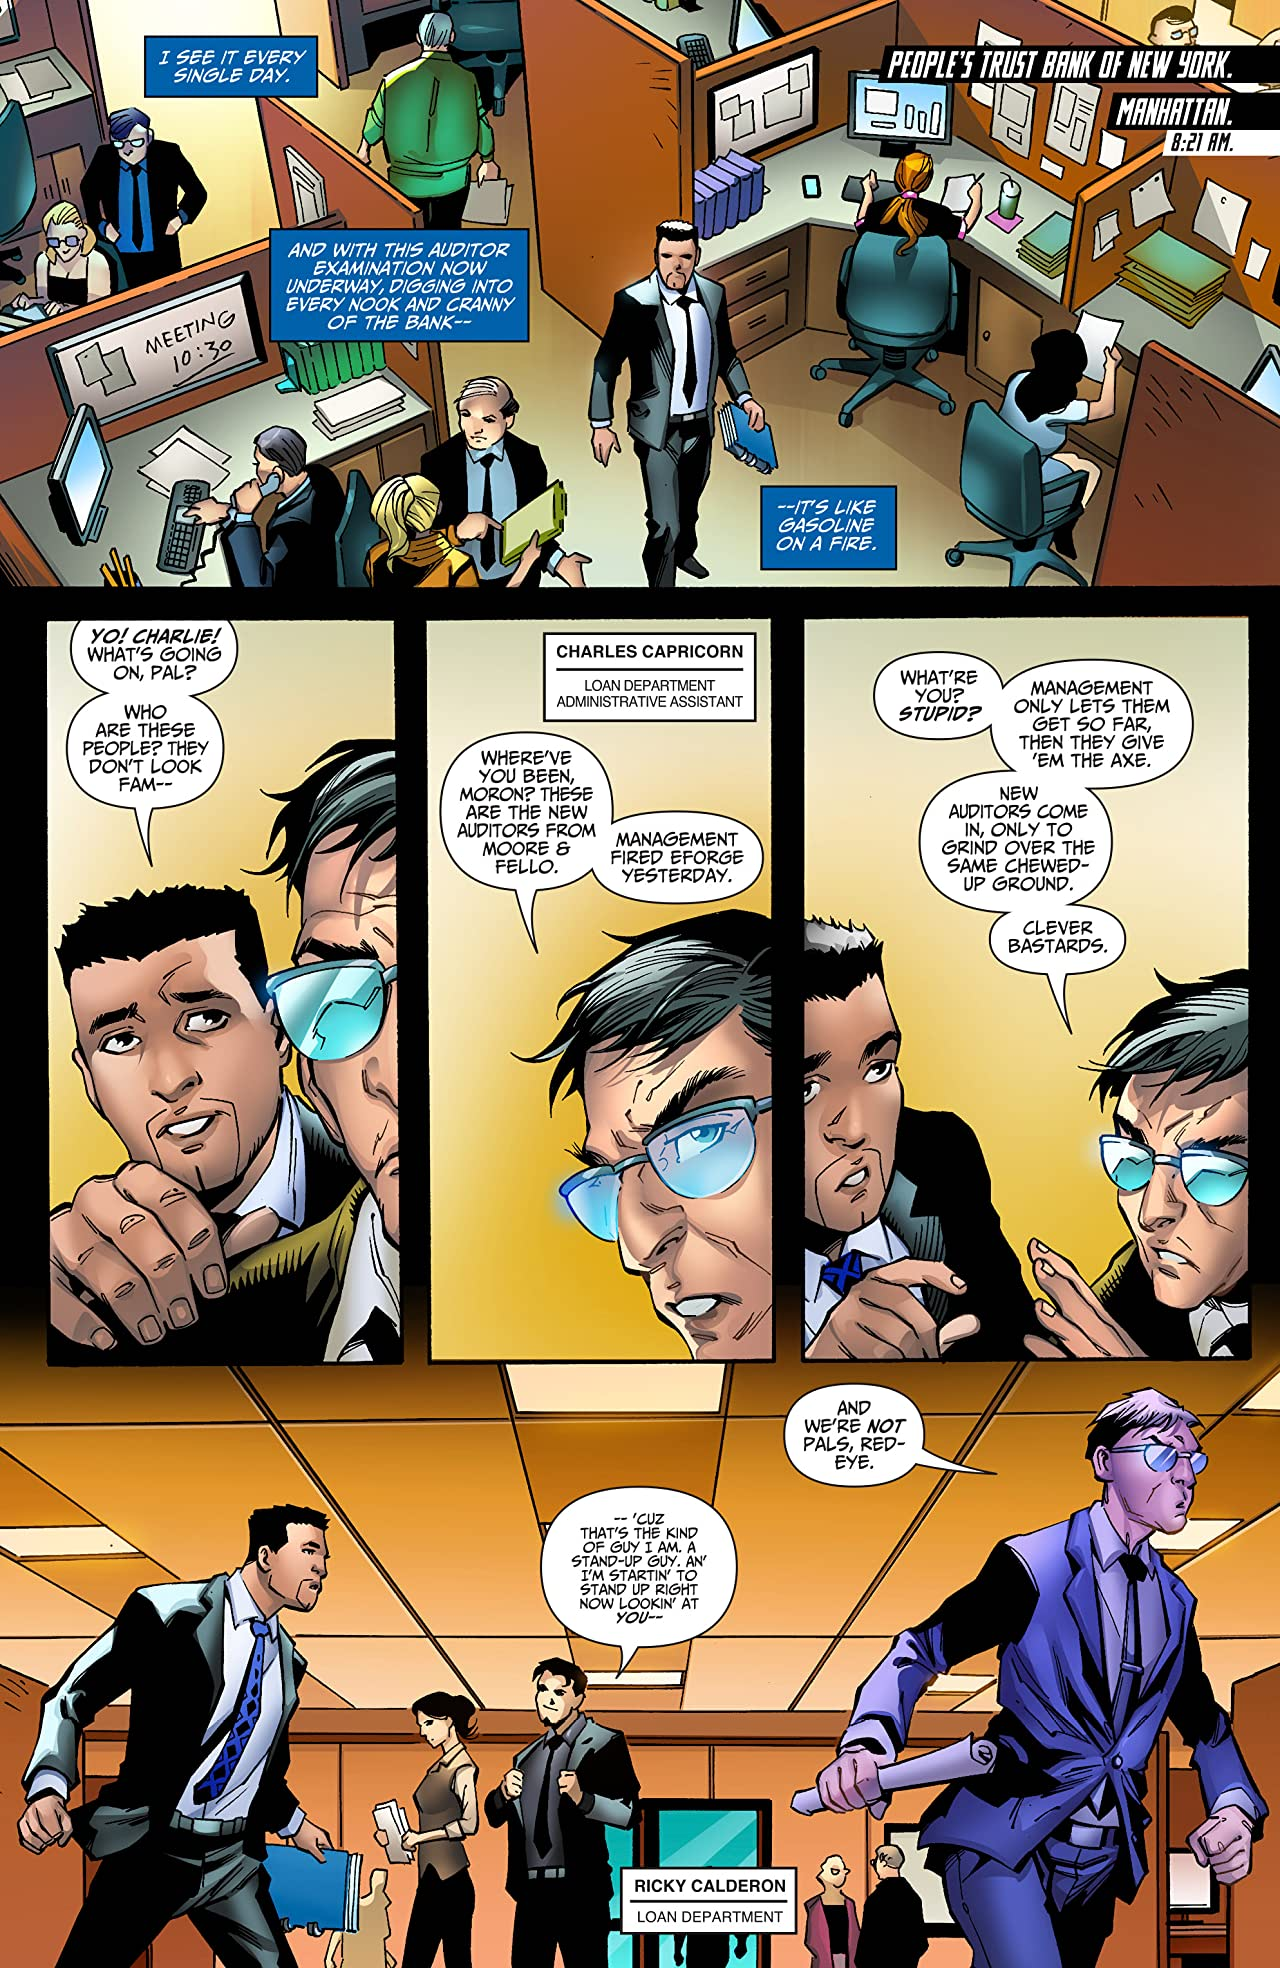 I.T. - The Secret World of Modern Banking Vol. 2 #4